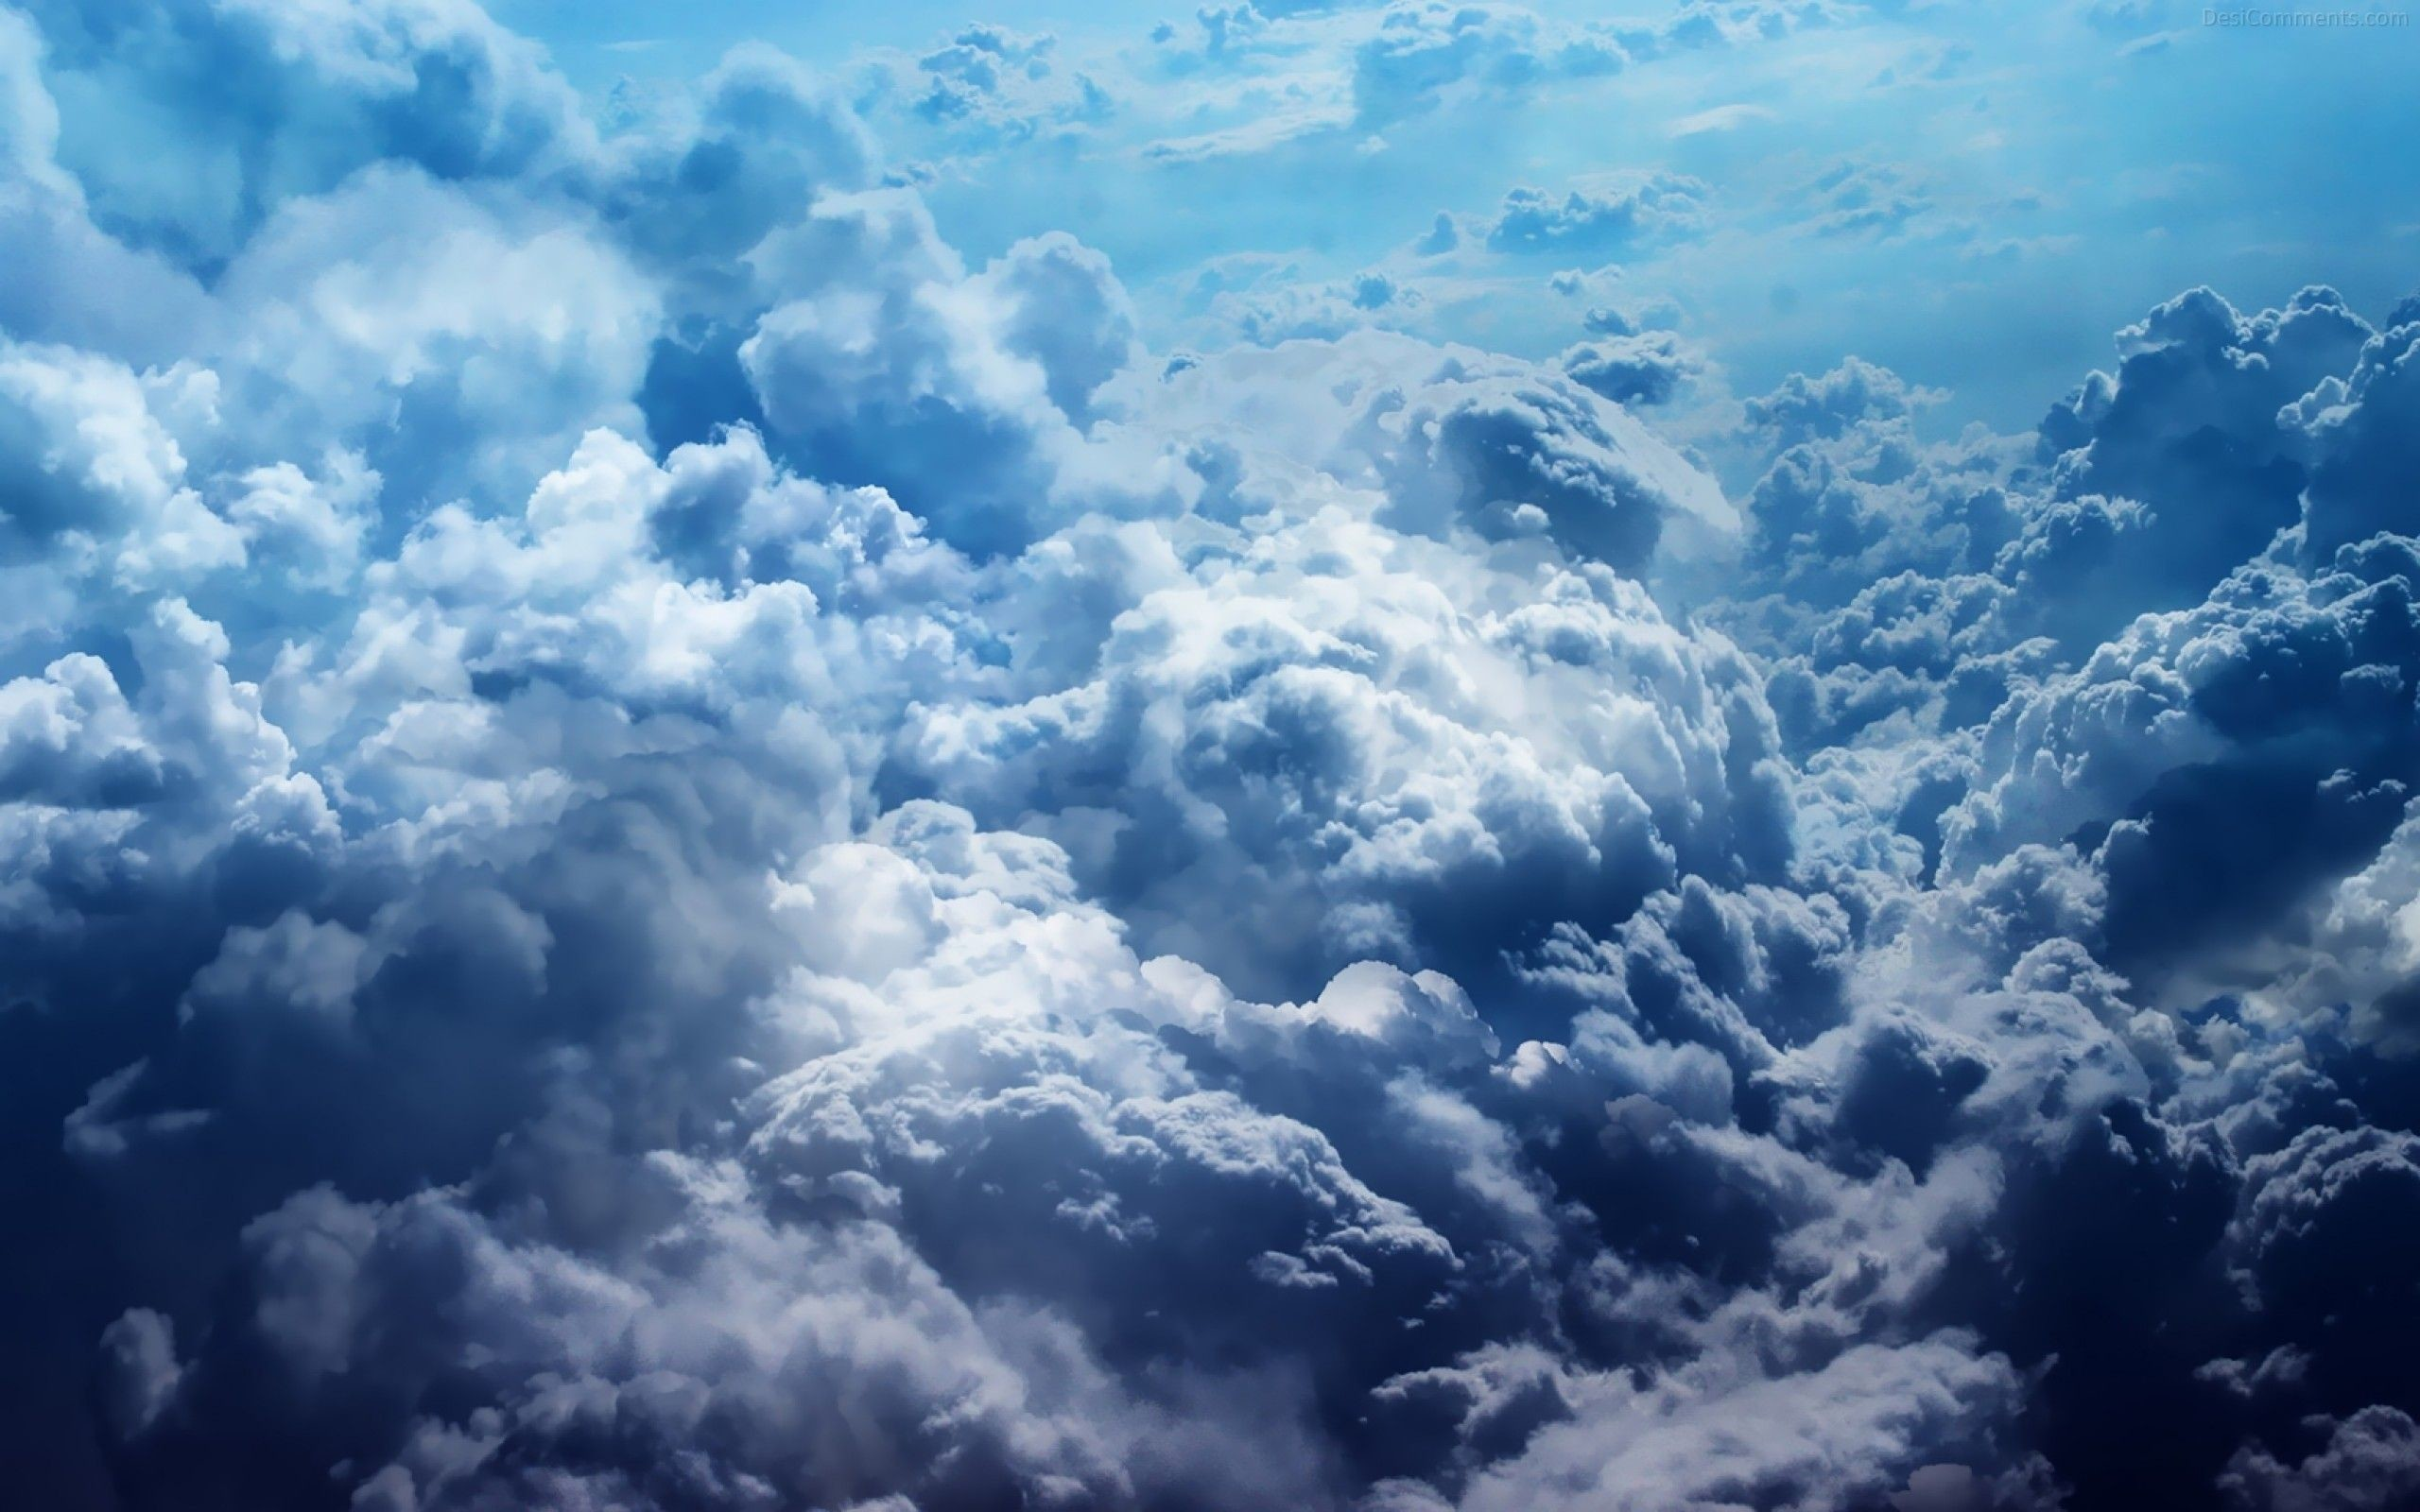 Res: 2560x1600, Sky-Clouds.jpg (2560×1600)